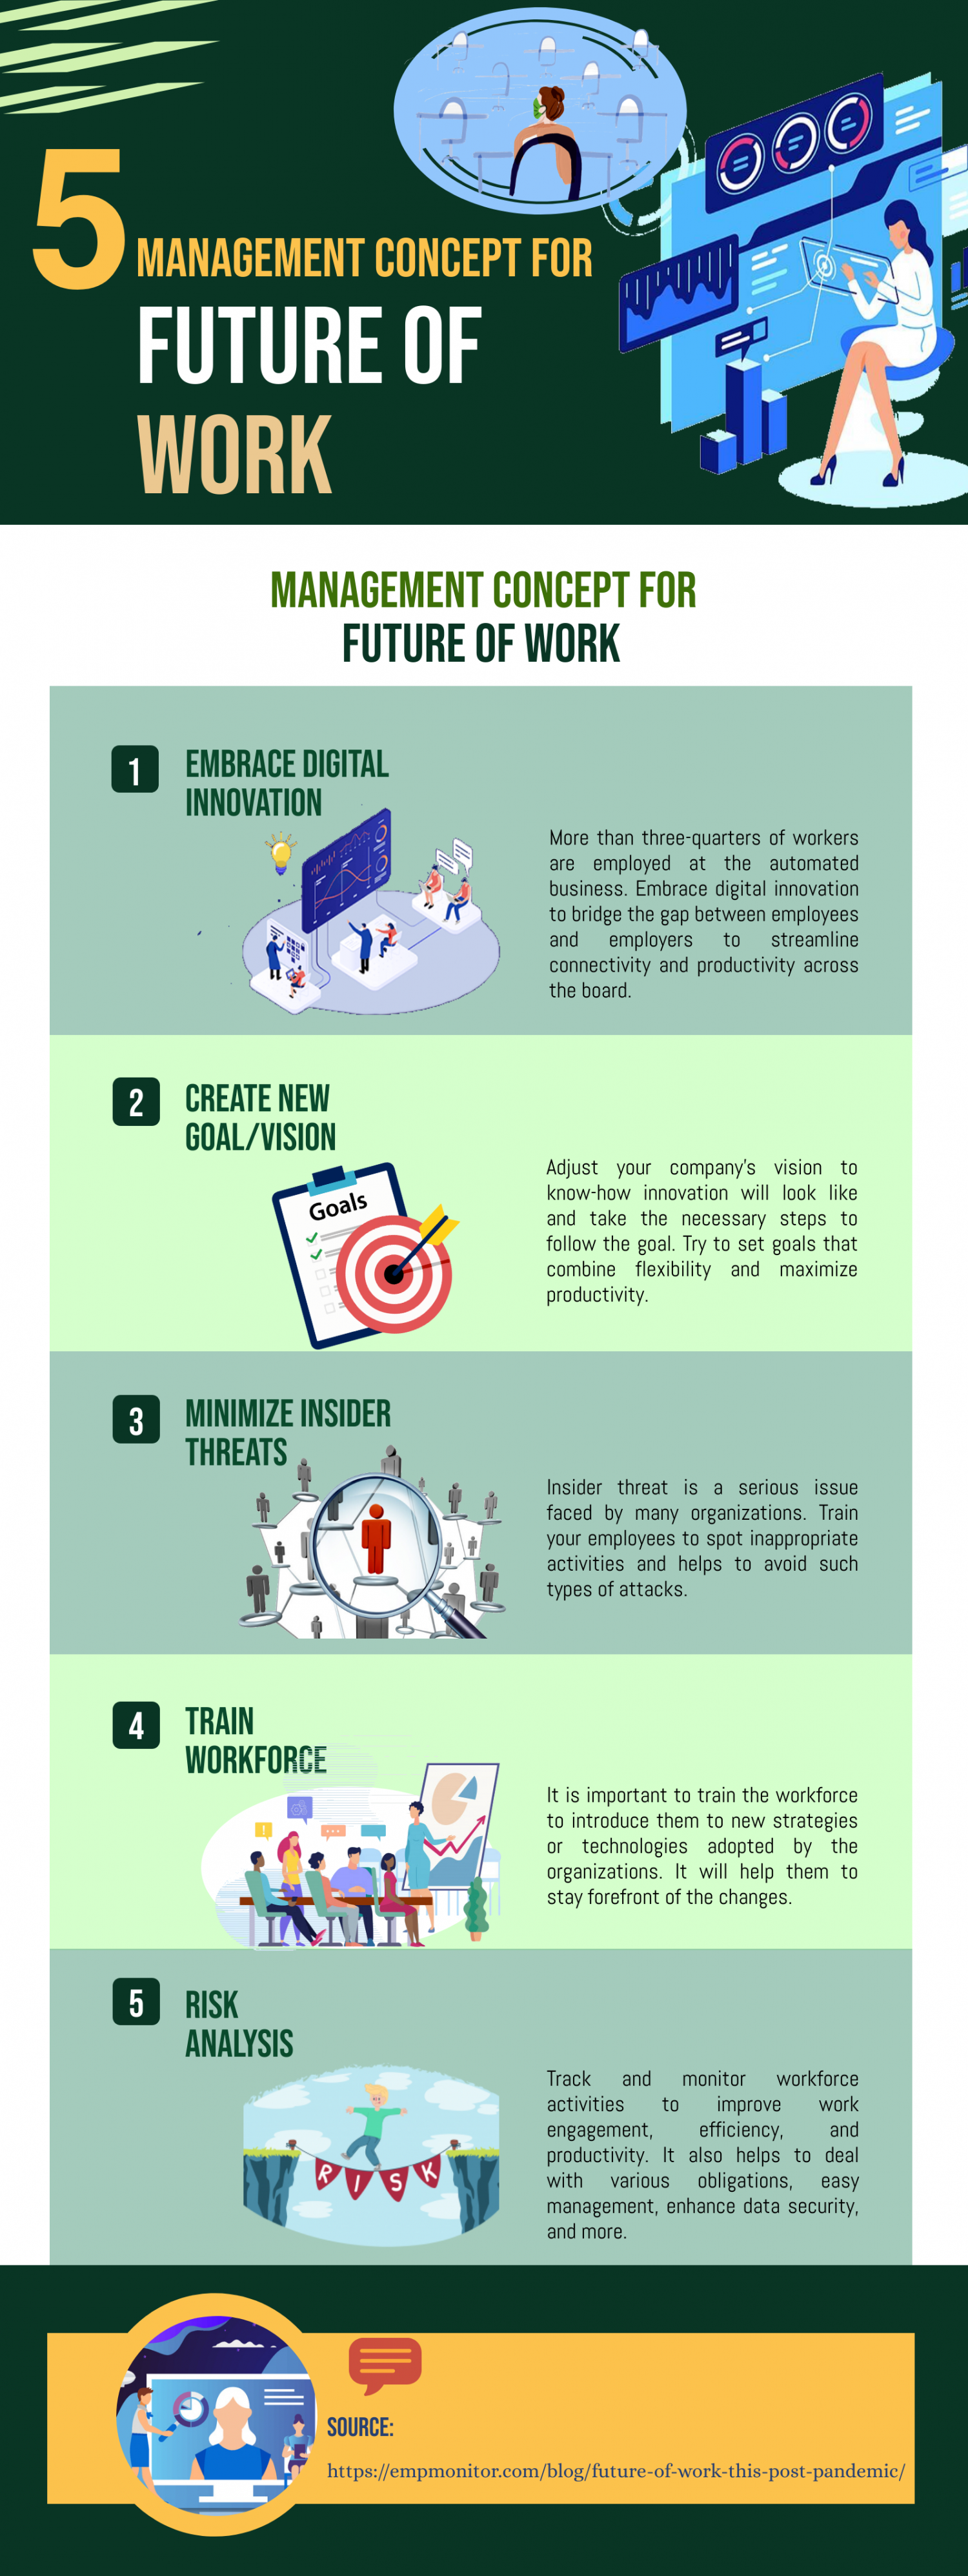 5 Management Concept For Future Of Work Infographic